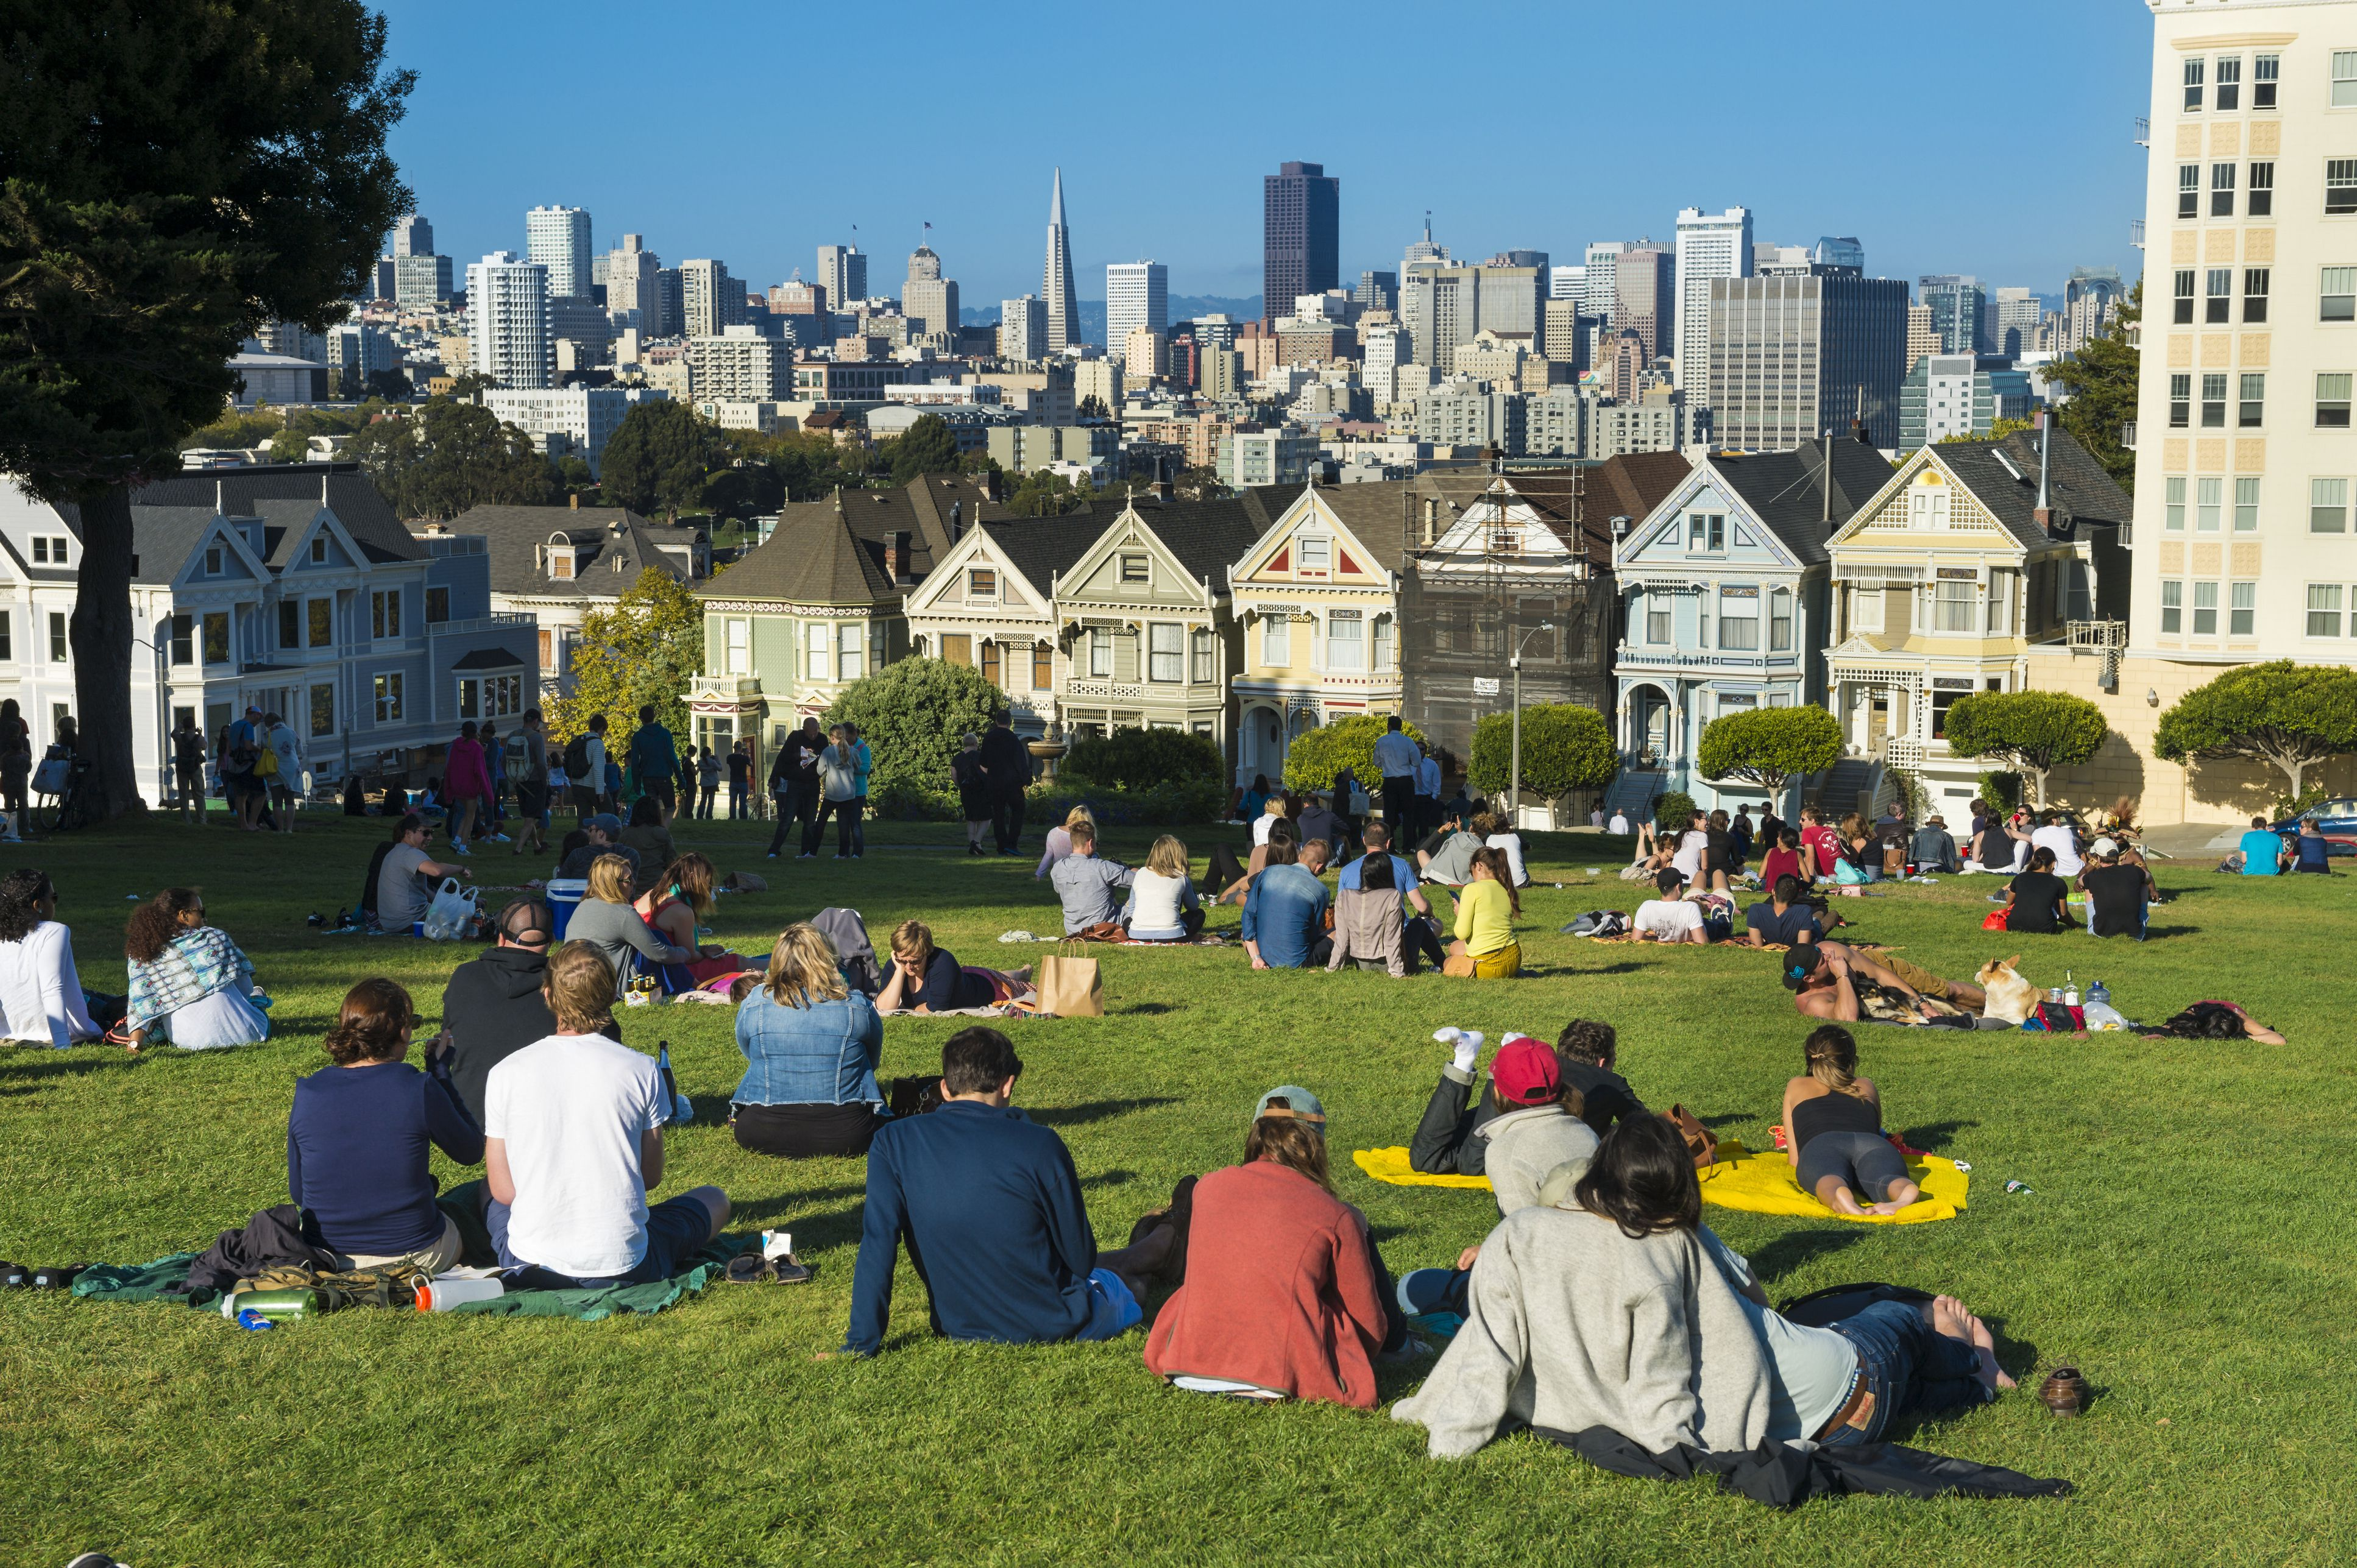 Full House House In San Francisco Address And Location